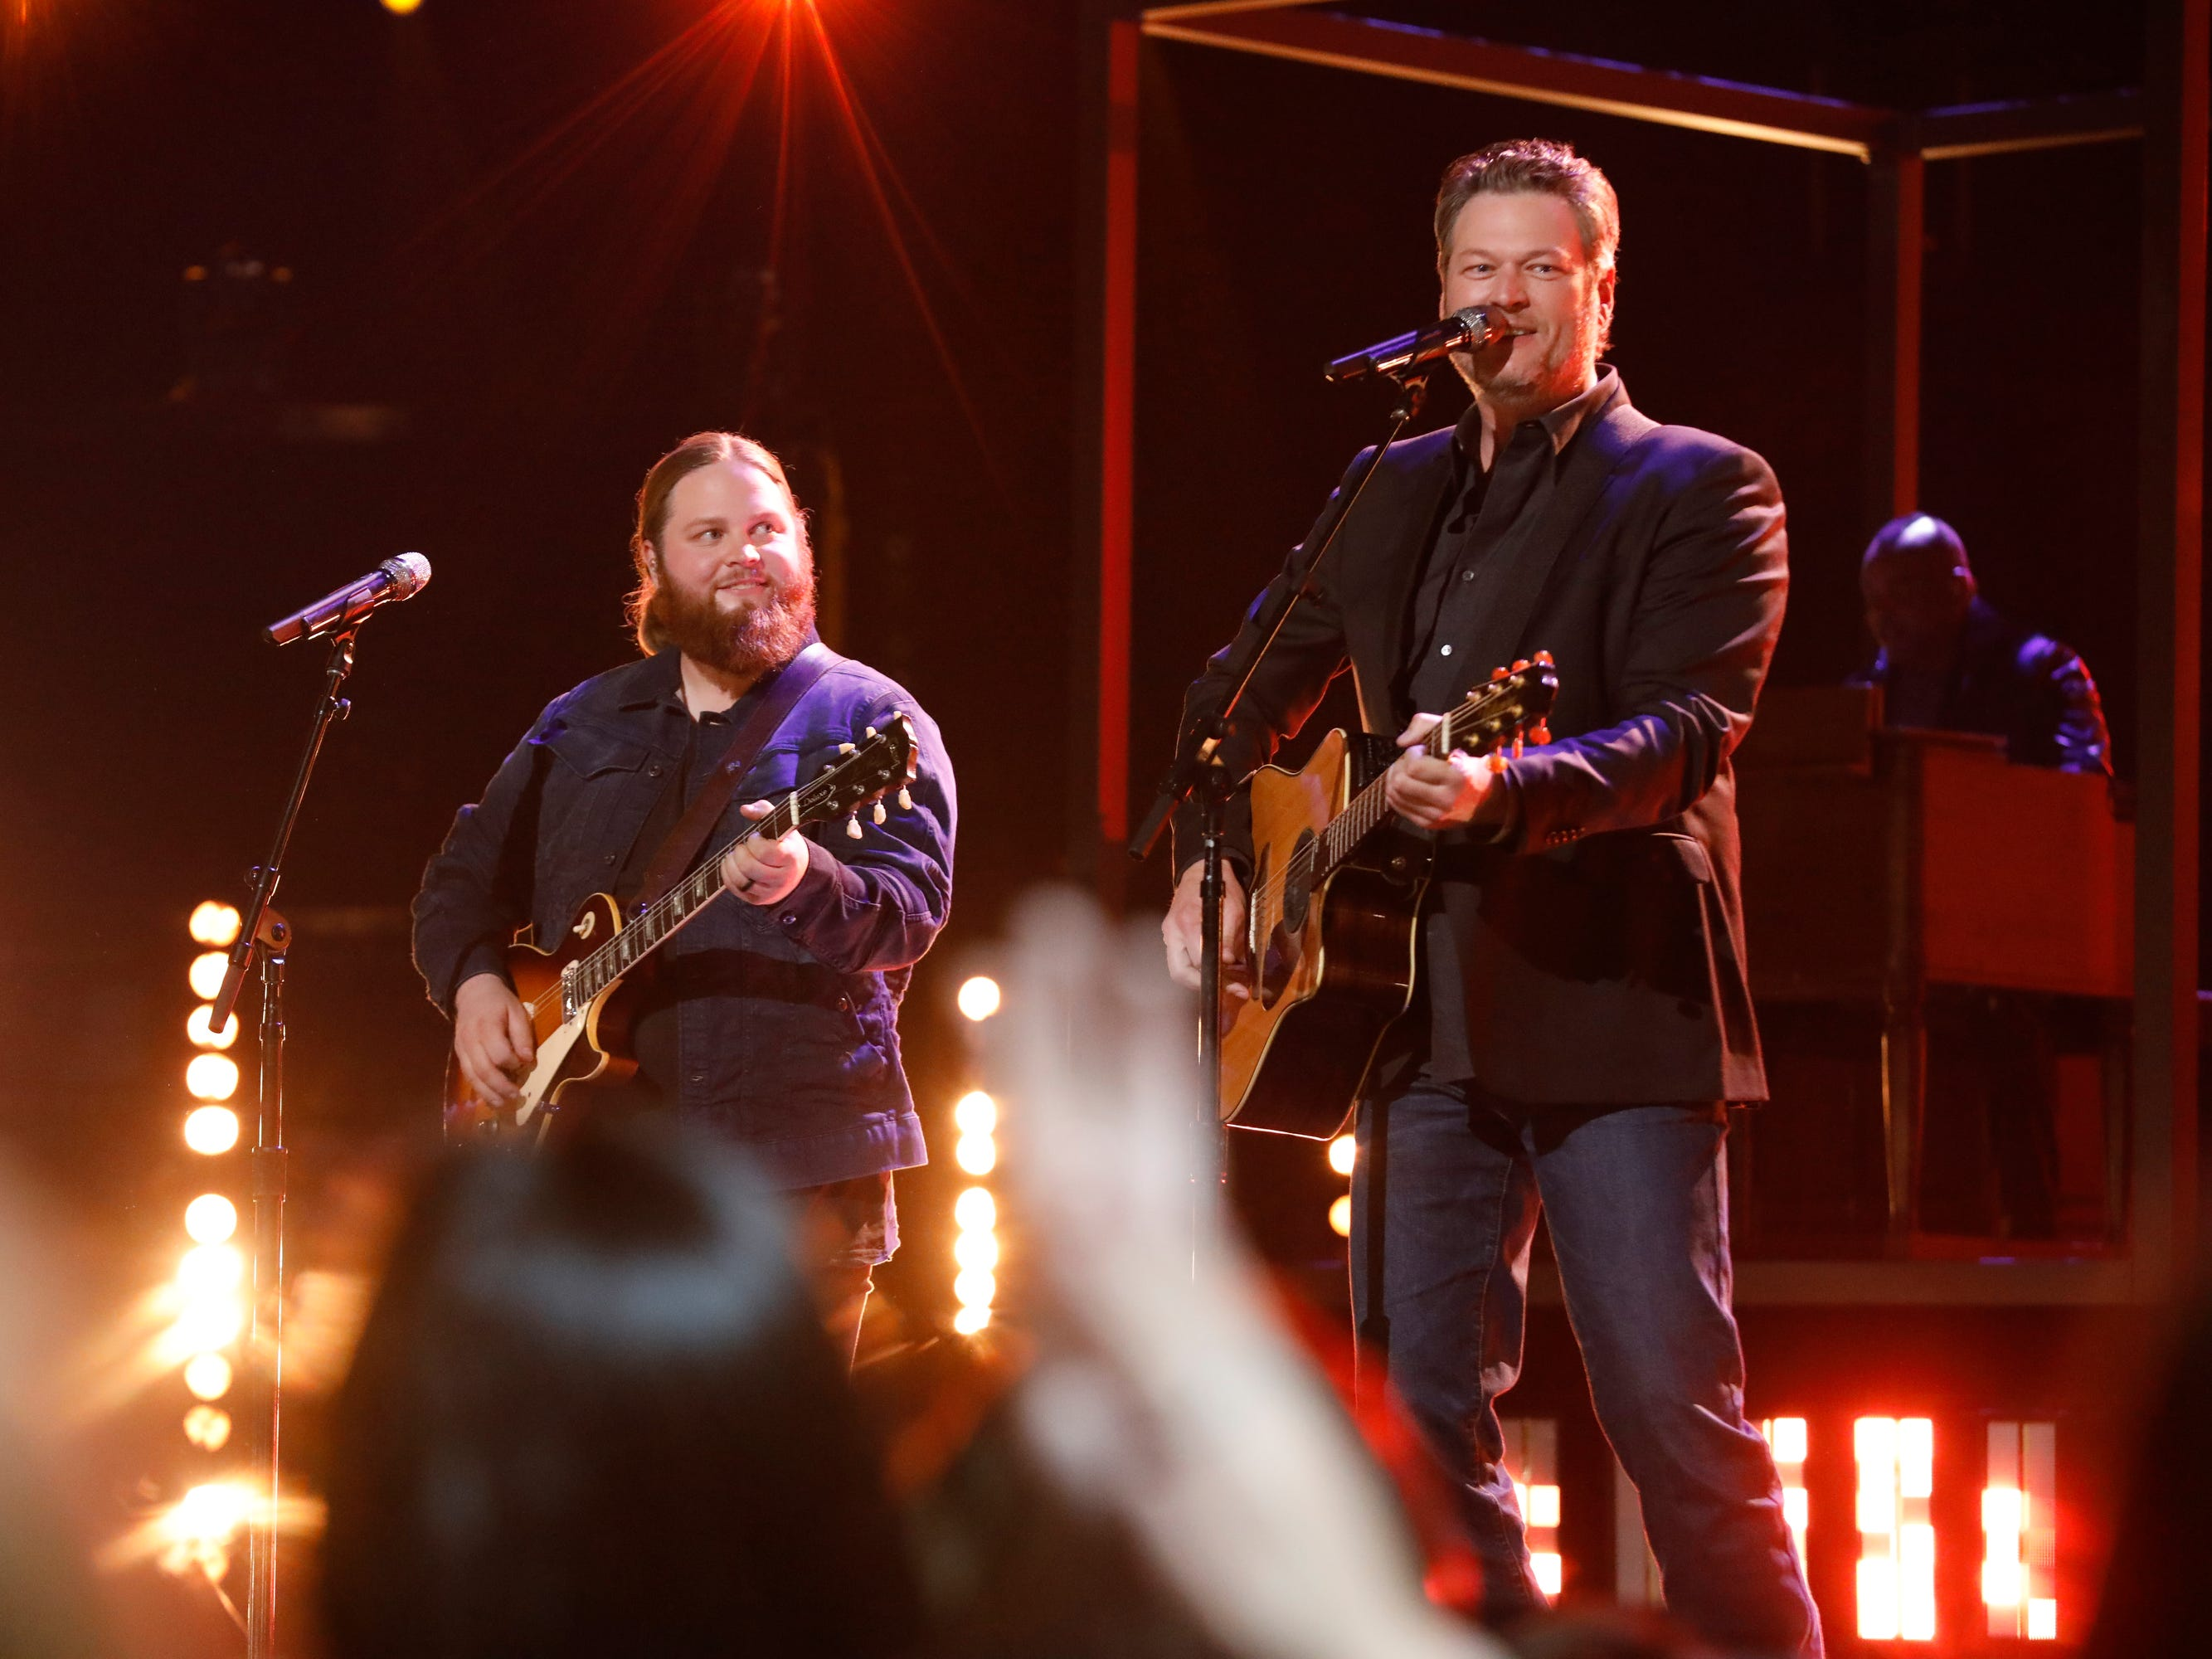 """Chris Kroeze looks on at his coach Blake Shelton during """"The Voice"""" finals Dec. 17, as the two sang a duet of Delbert McClinton's """"Two More Bottles of Wine."""""""